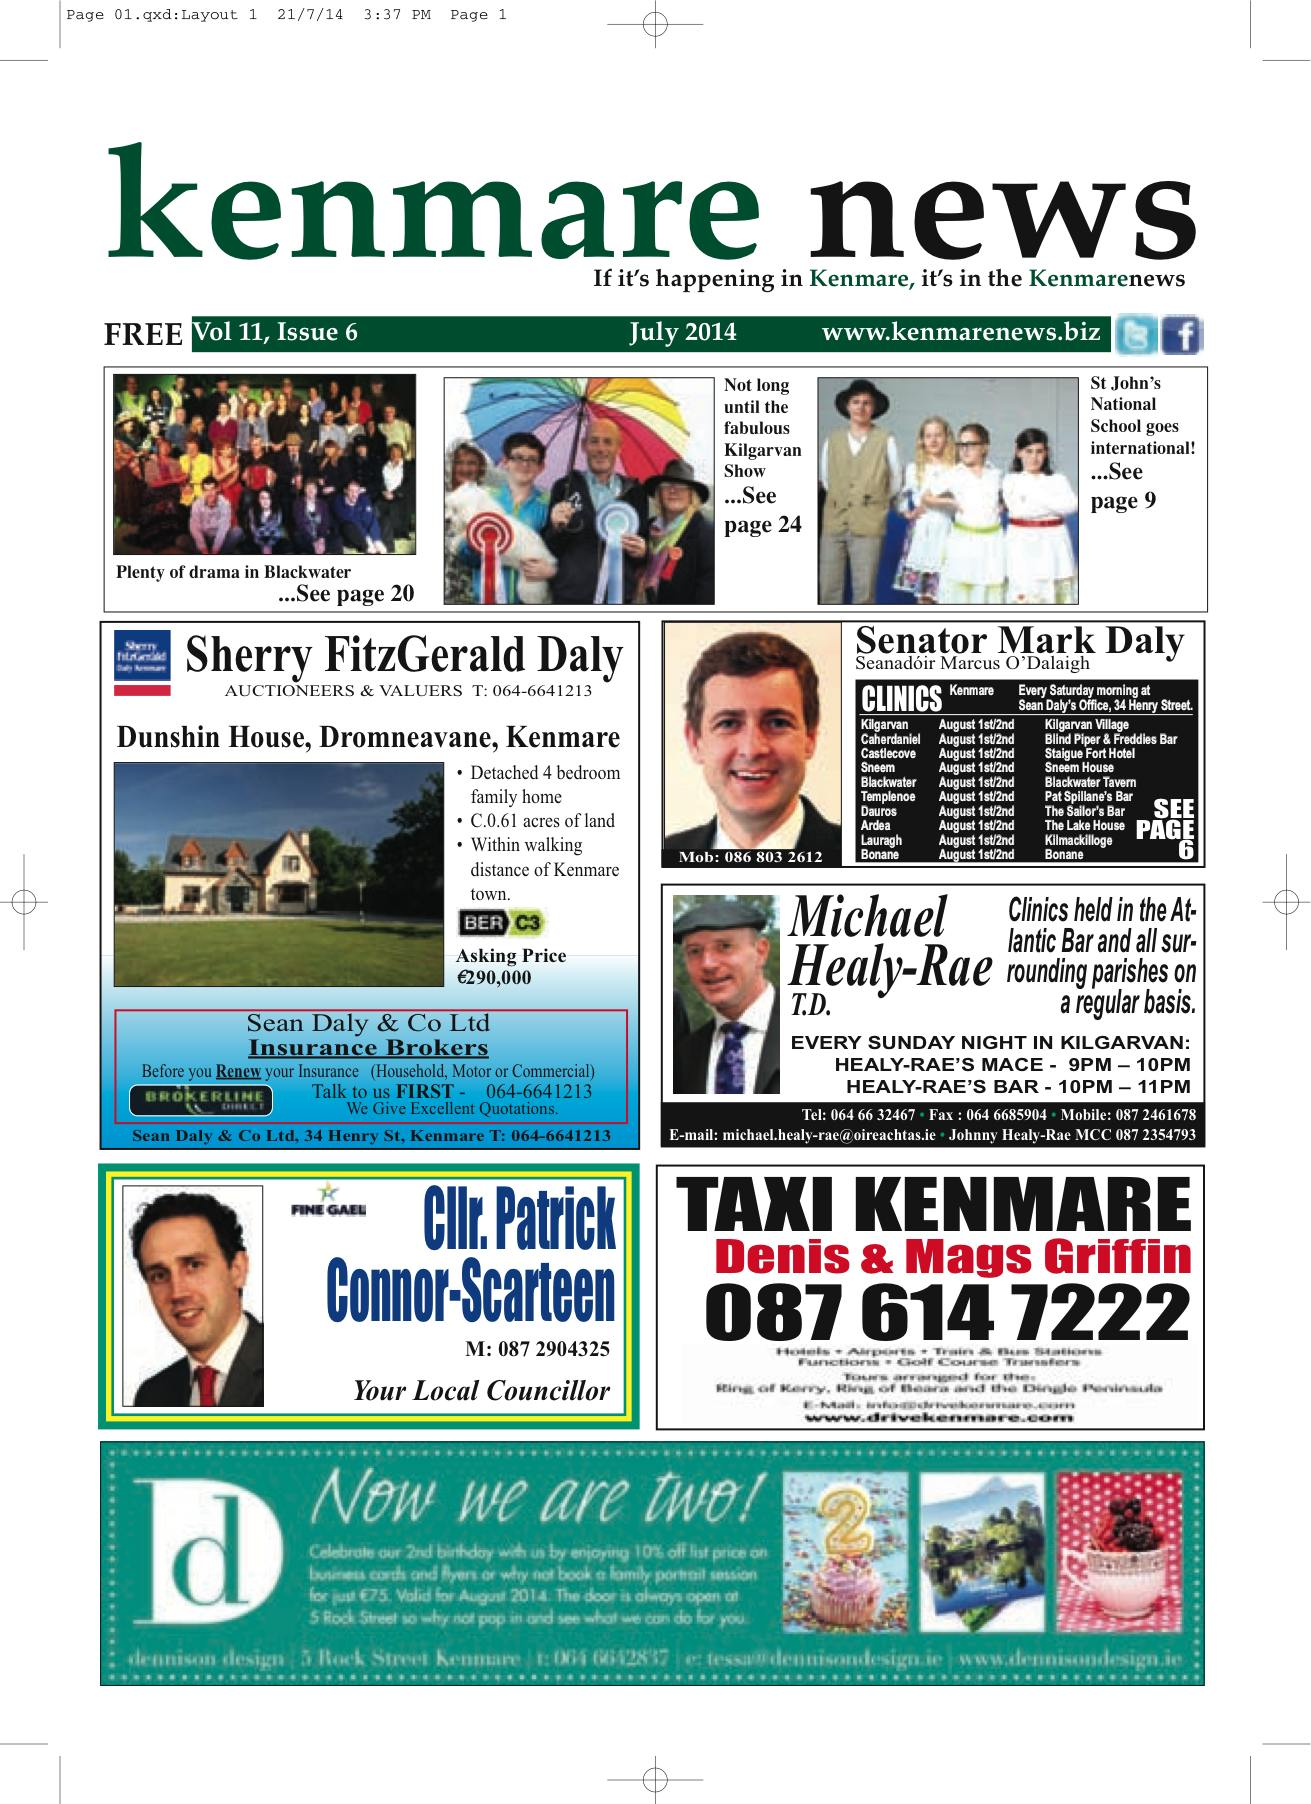 Kenmare News July 2014